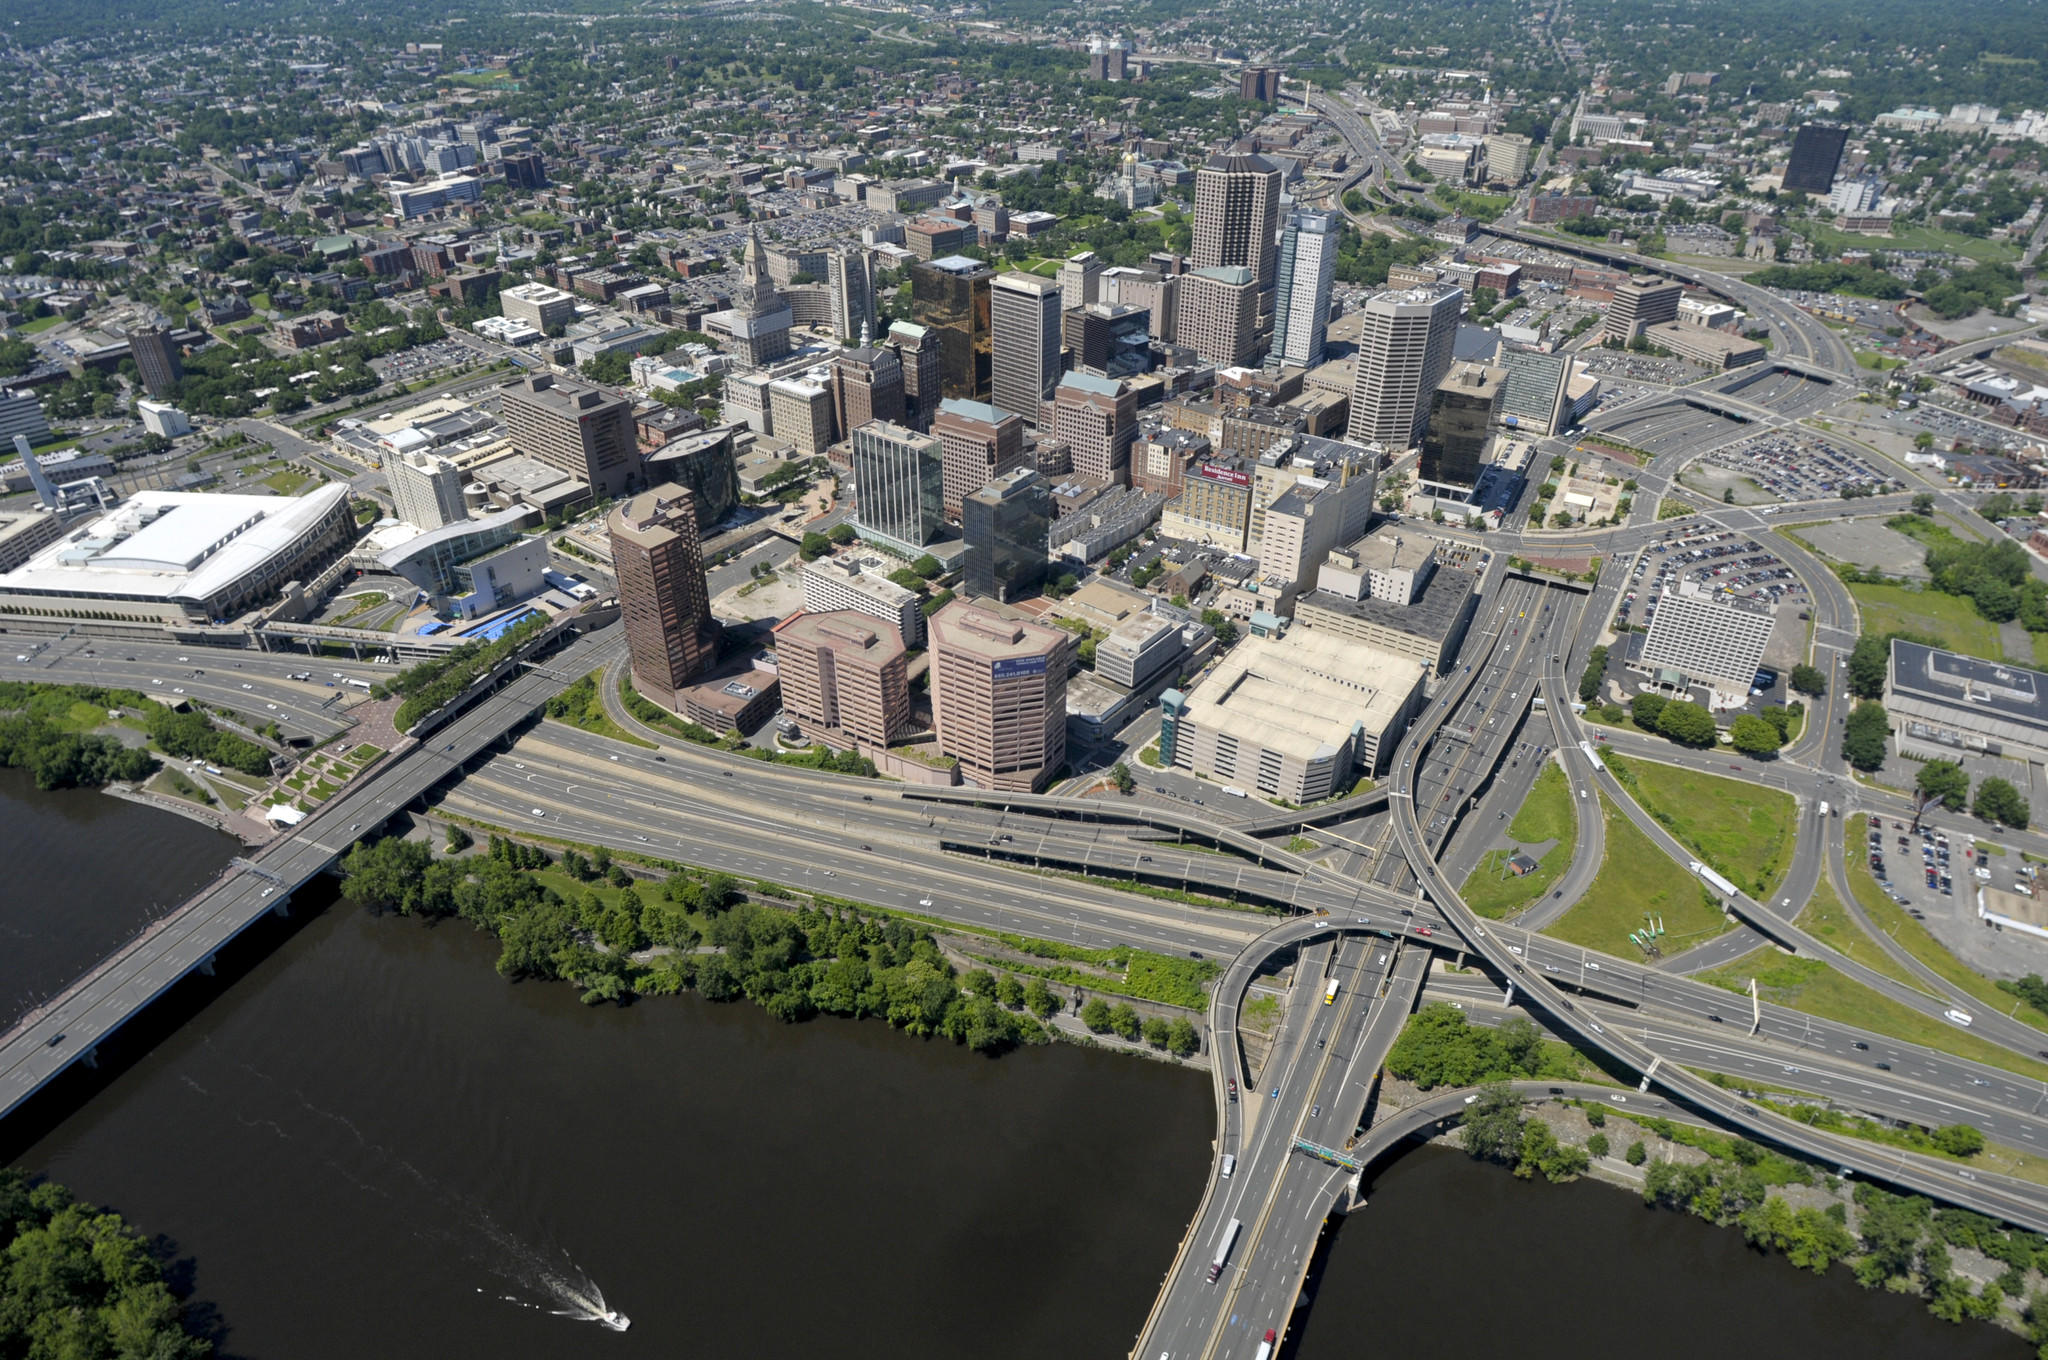 Hartford, seen from the MetLife blimp, is now at the center of a sprawling 38-town region encompassing nearly 1 million people.